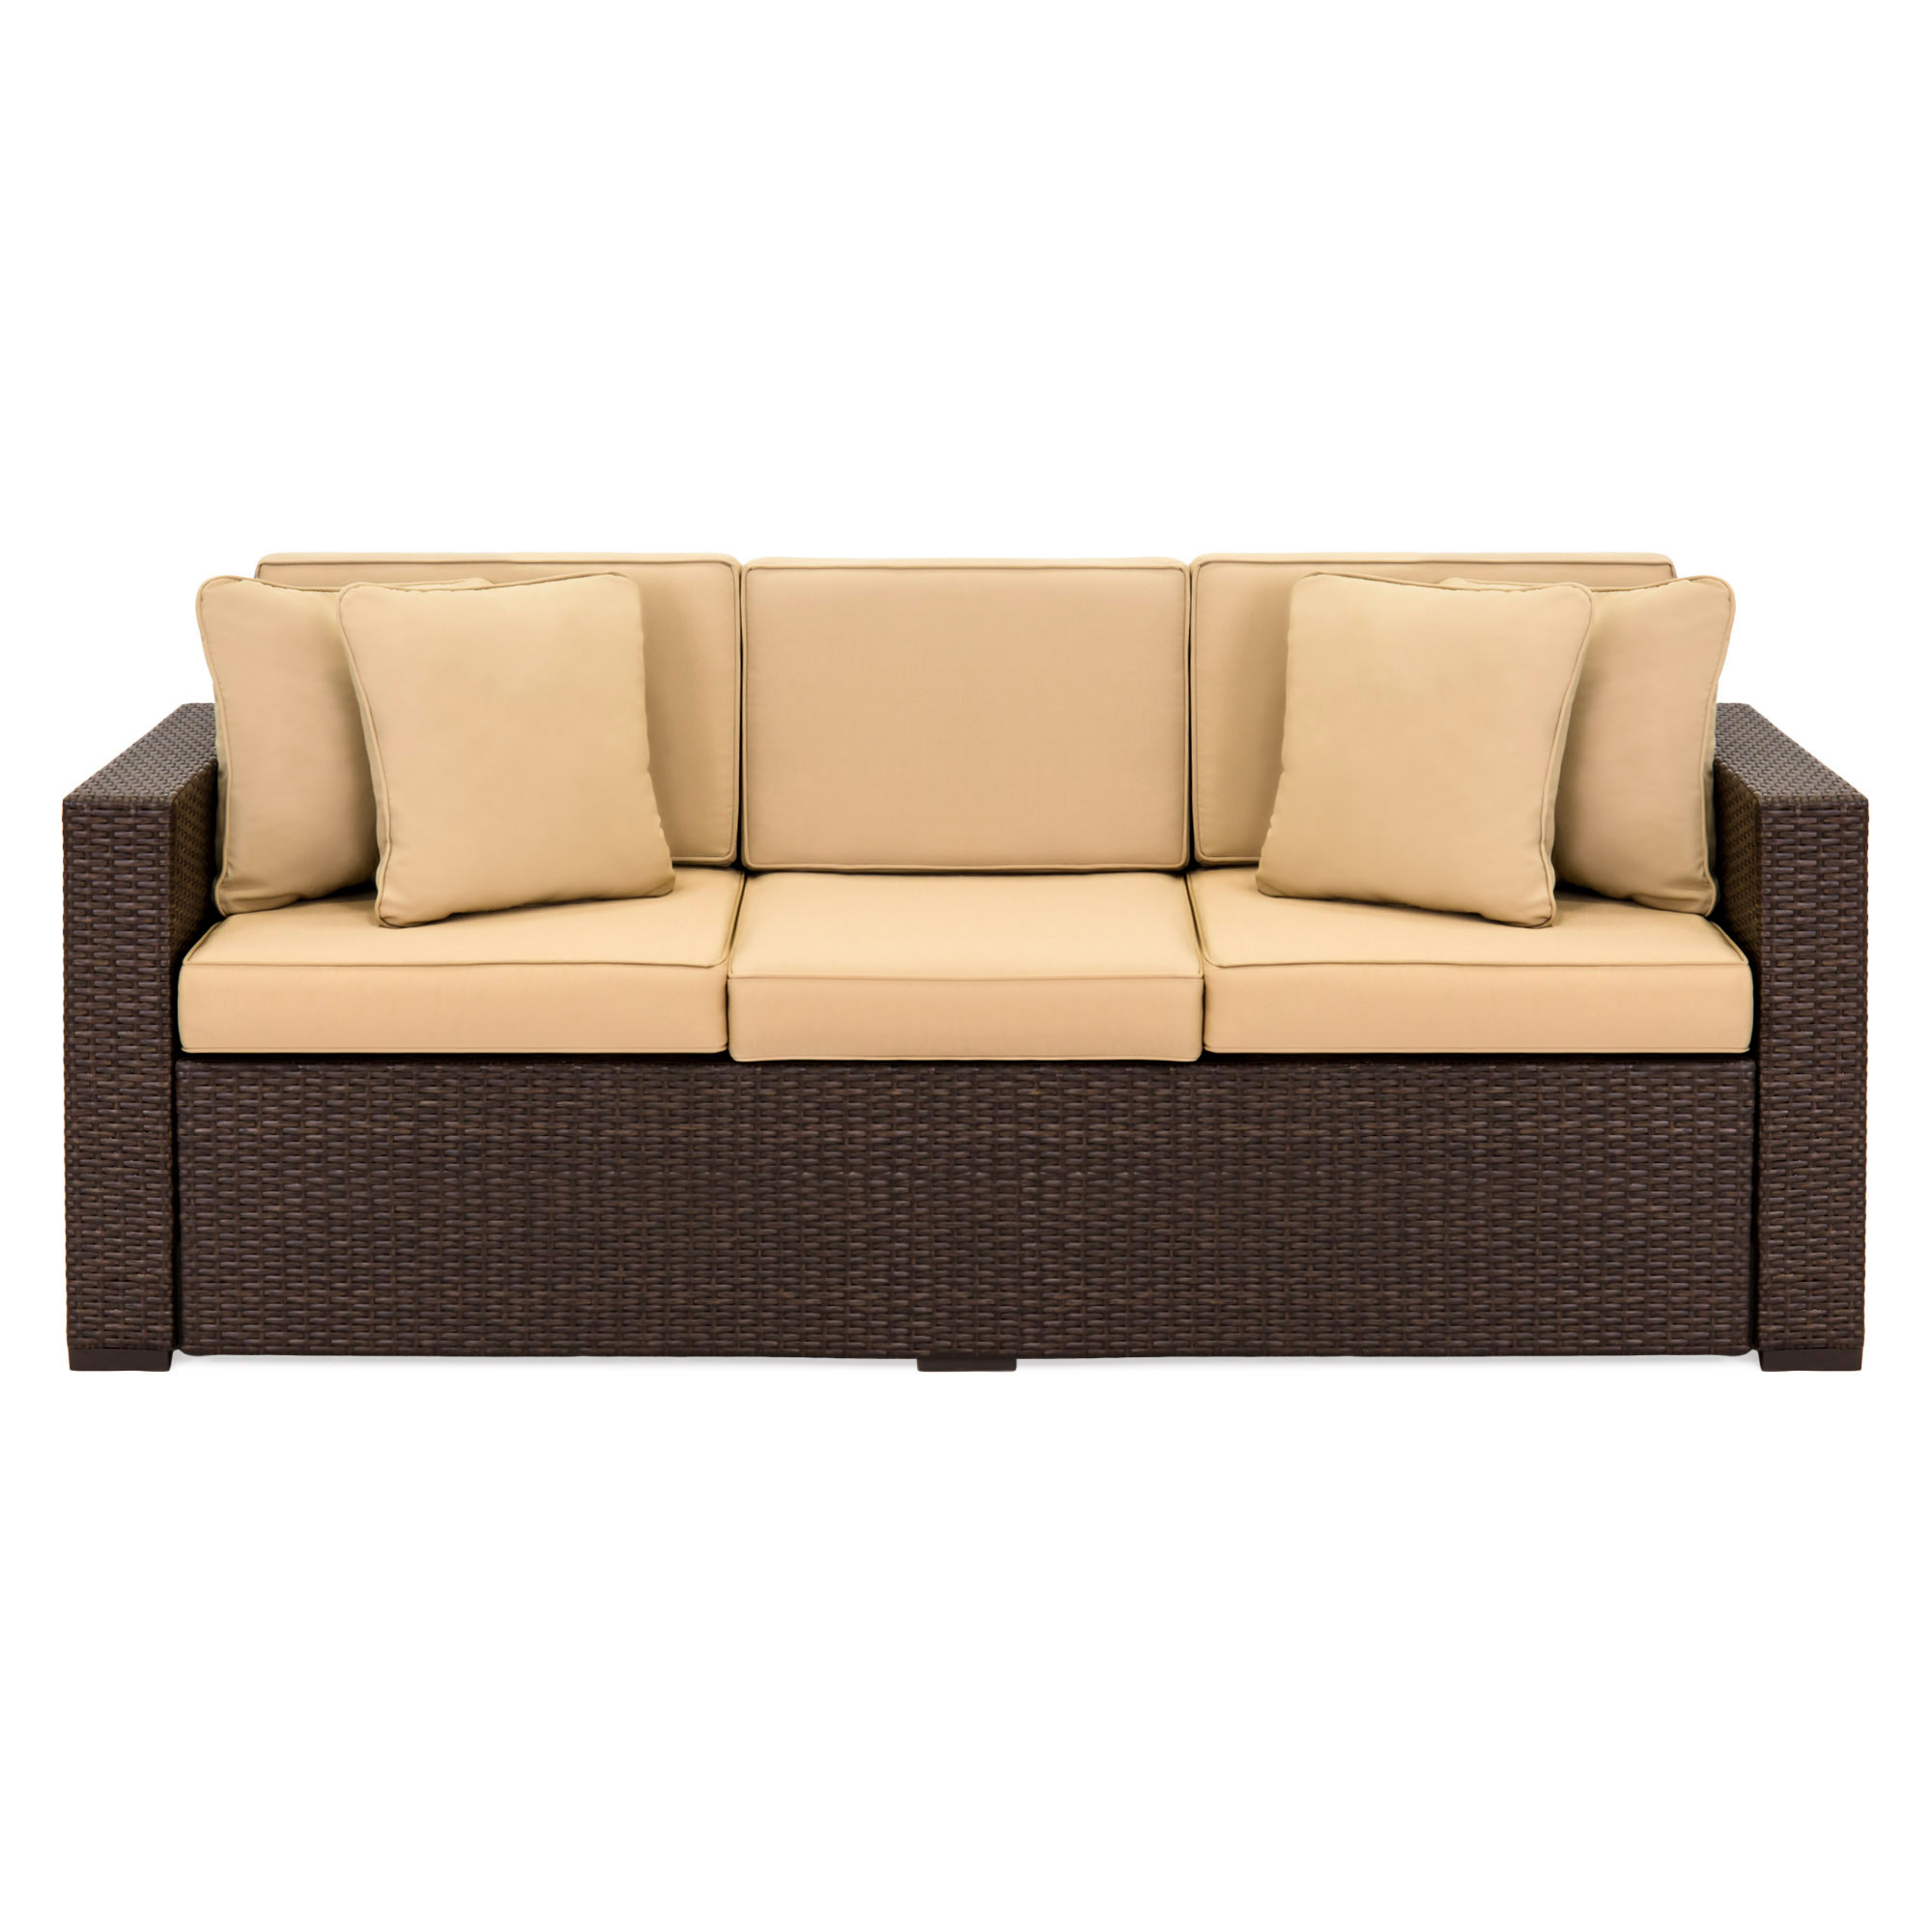 Sofa Couch Best Choiceproducts Outdoor Wicker Patio Furniture Sofa 3 Seater Luxury Comfort Brown Wicker Couch